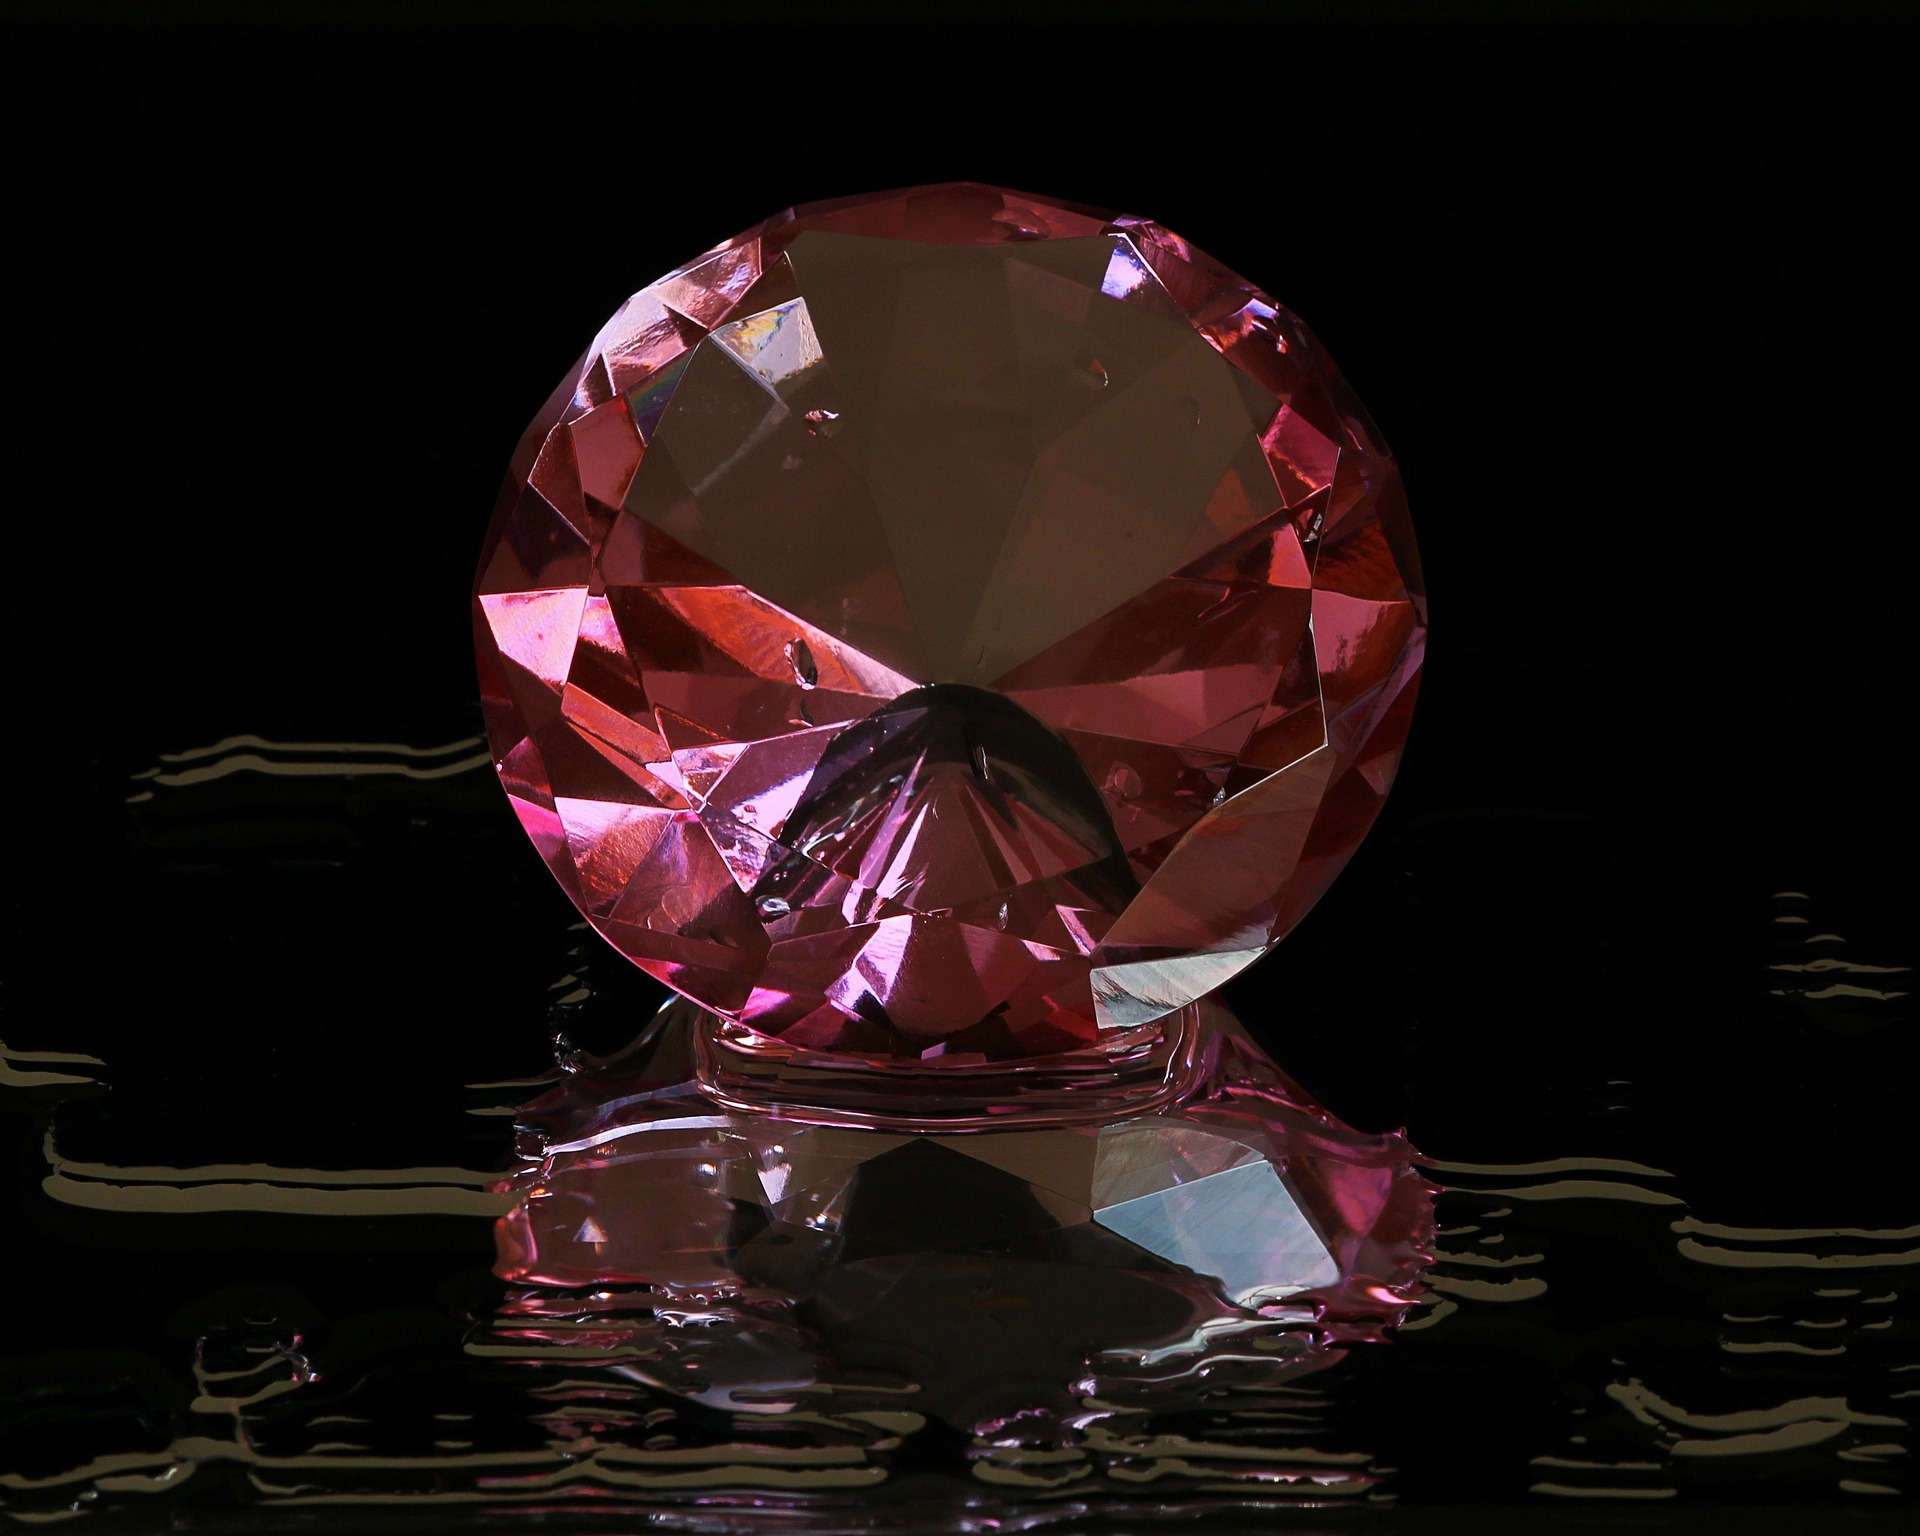 pink-diamond-82592_1920 large